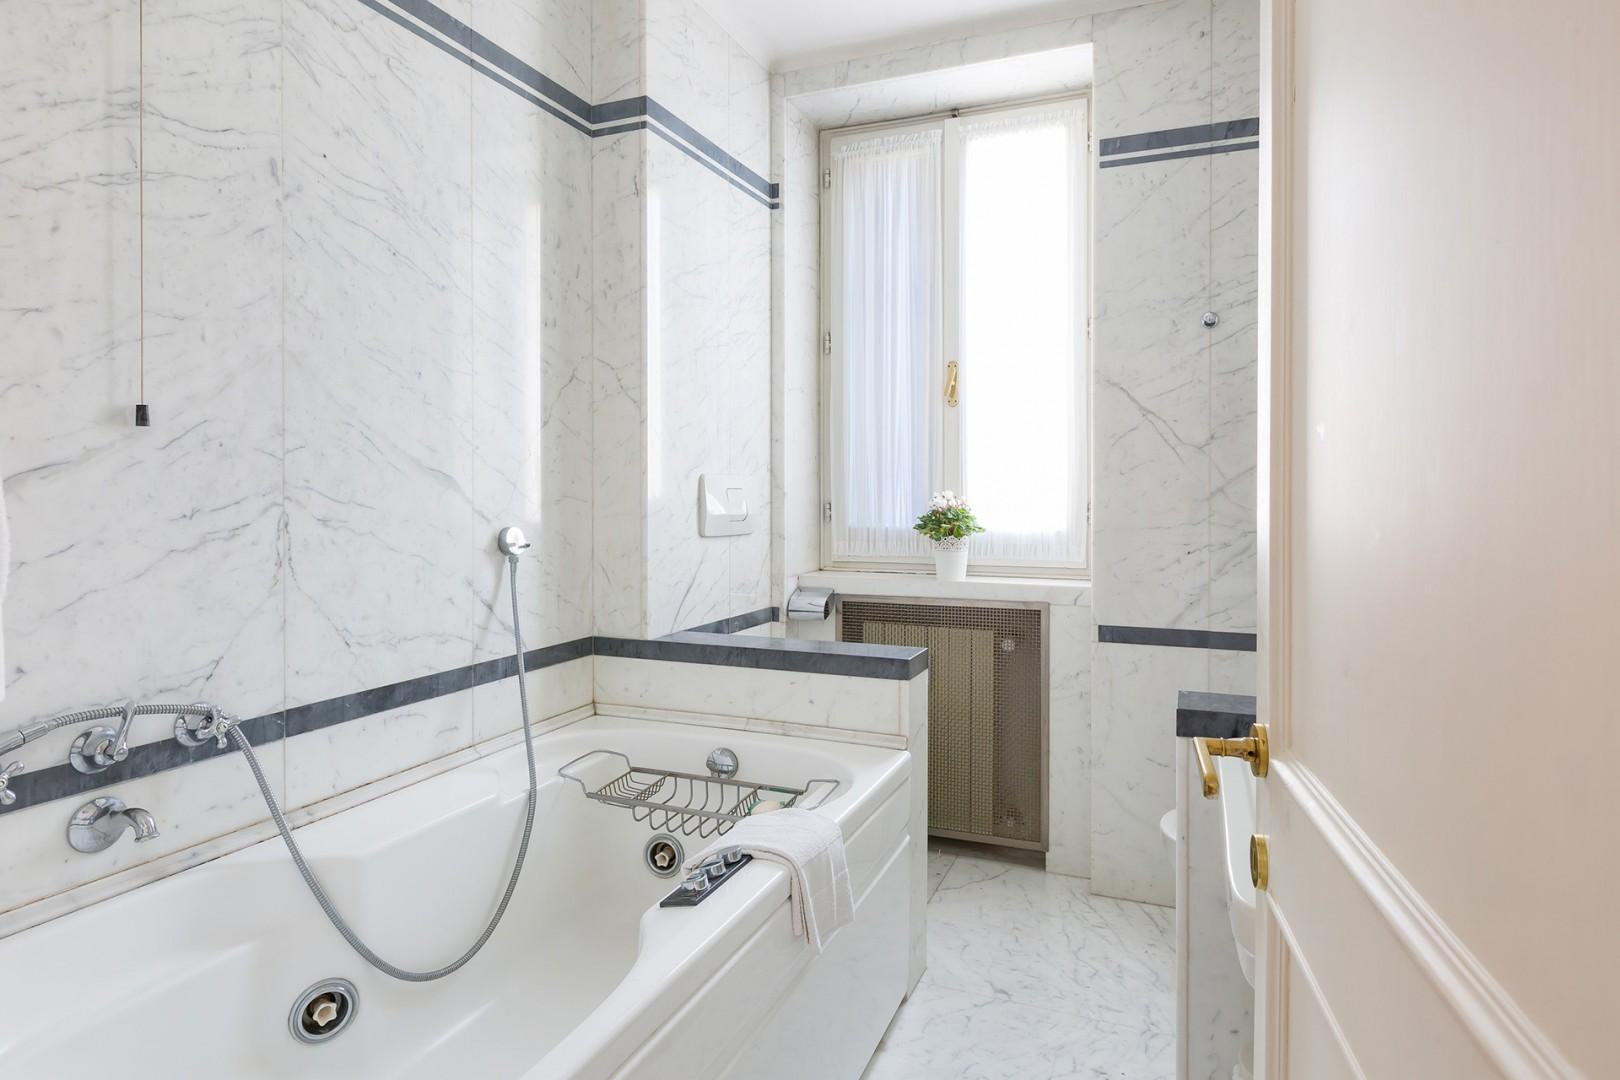 The bathroom features a jacuzzi tub, telephone-style shower, toilet, bidet and sink.